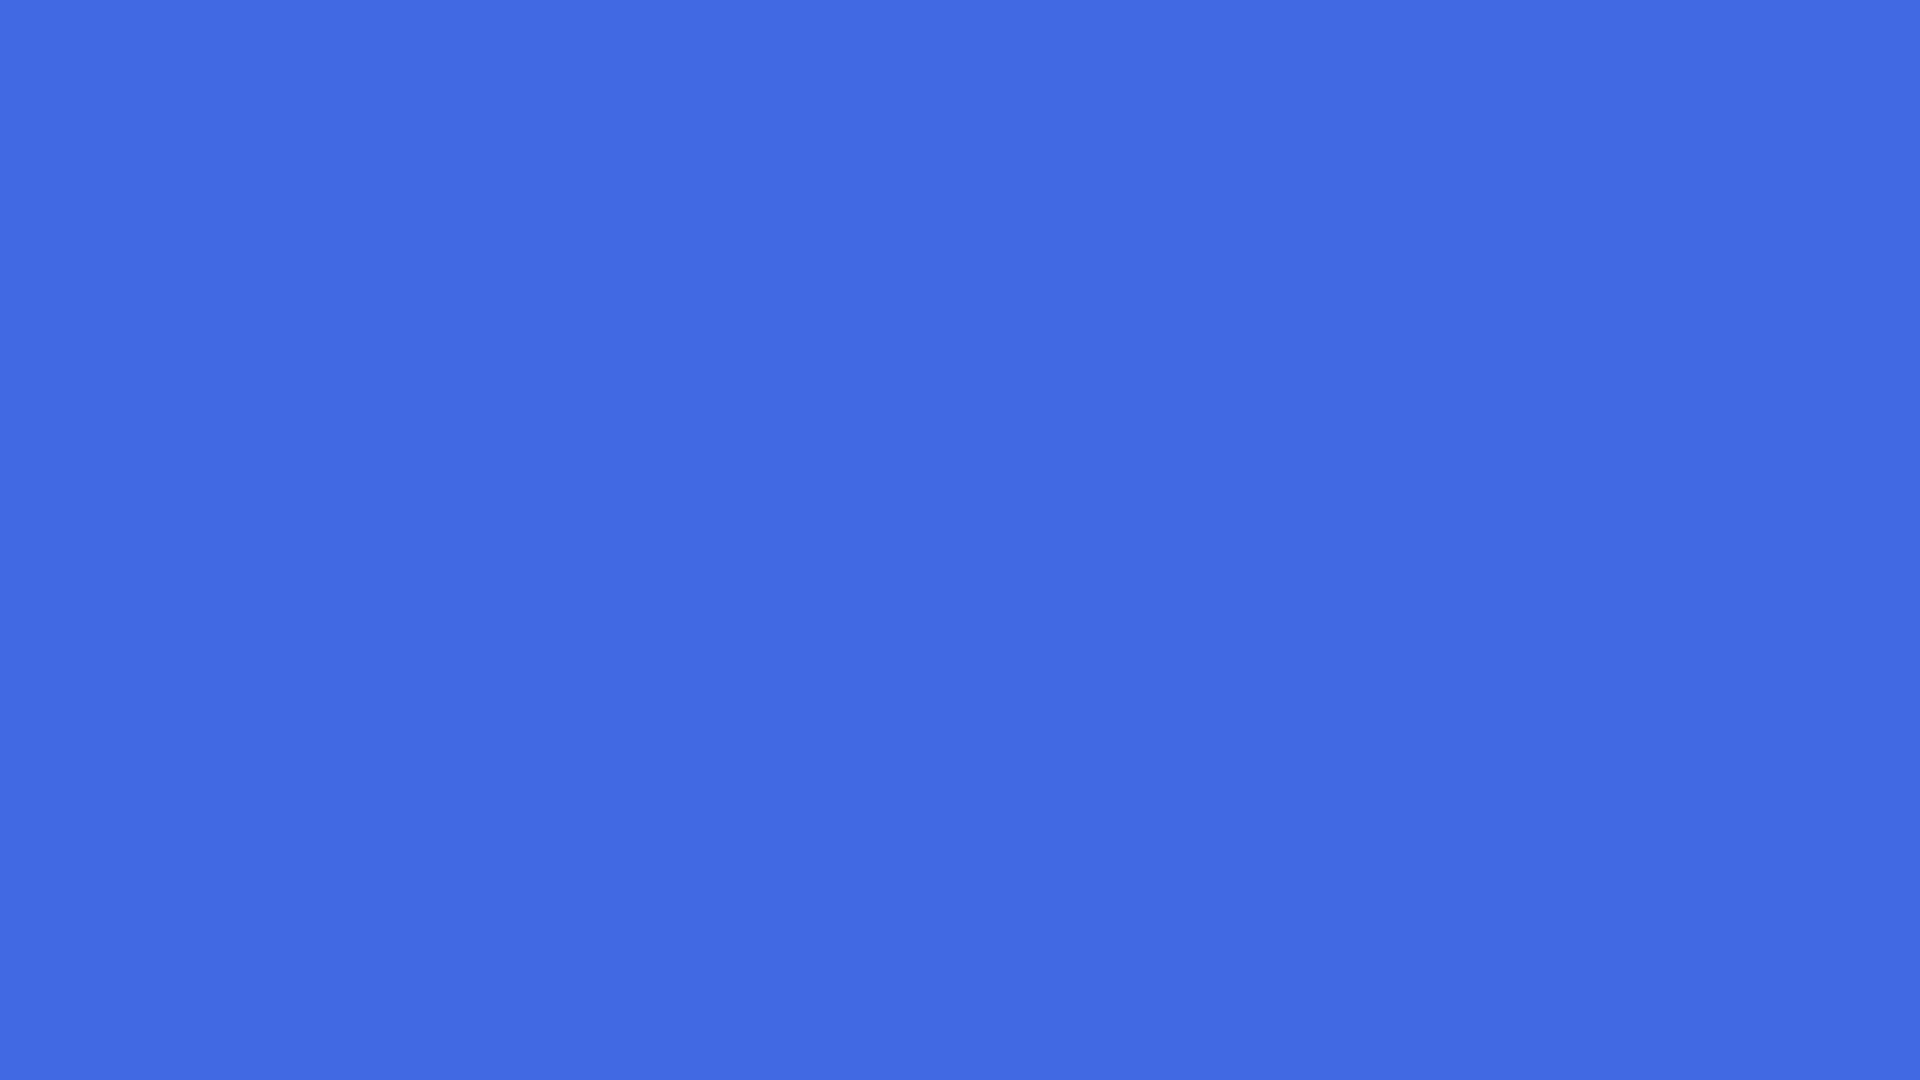 1920x1080 Royal Blue Web Solid Color Background 1920x1080